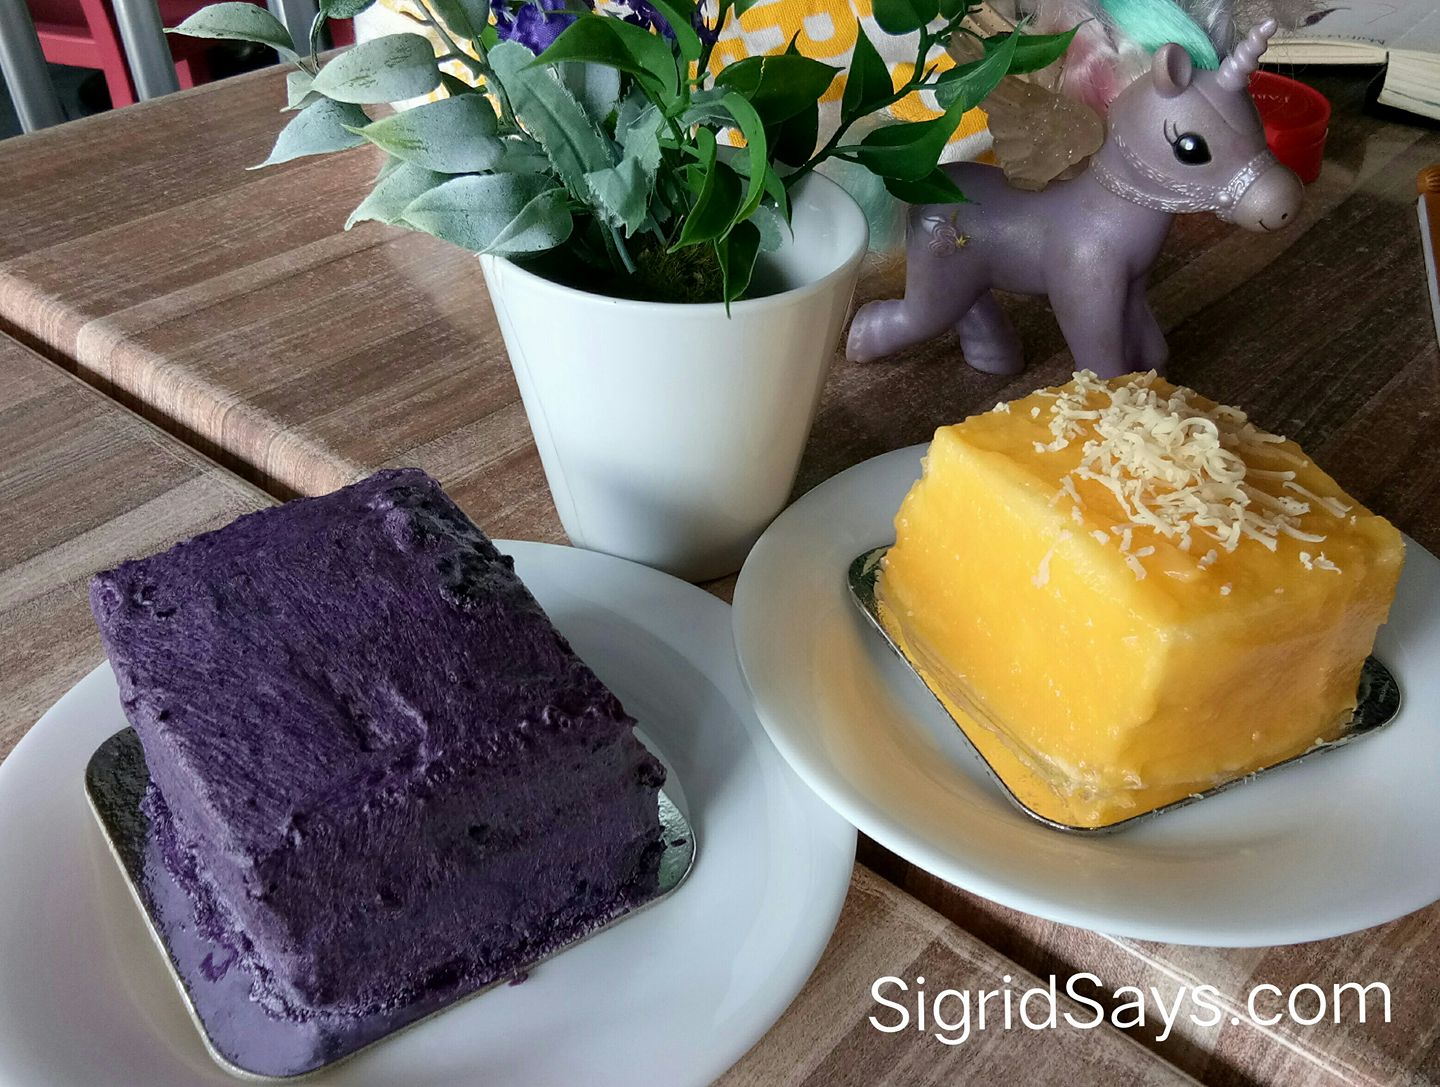 Nonna's Kitchen ube cake - Bacolod cafe